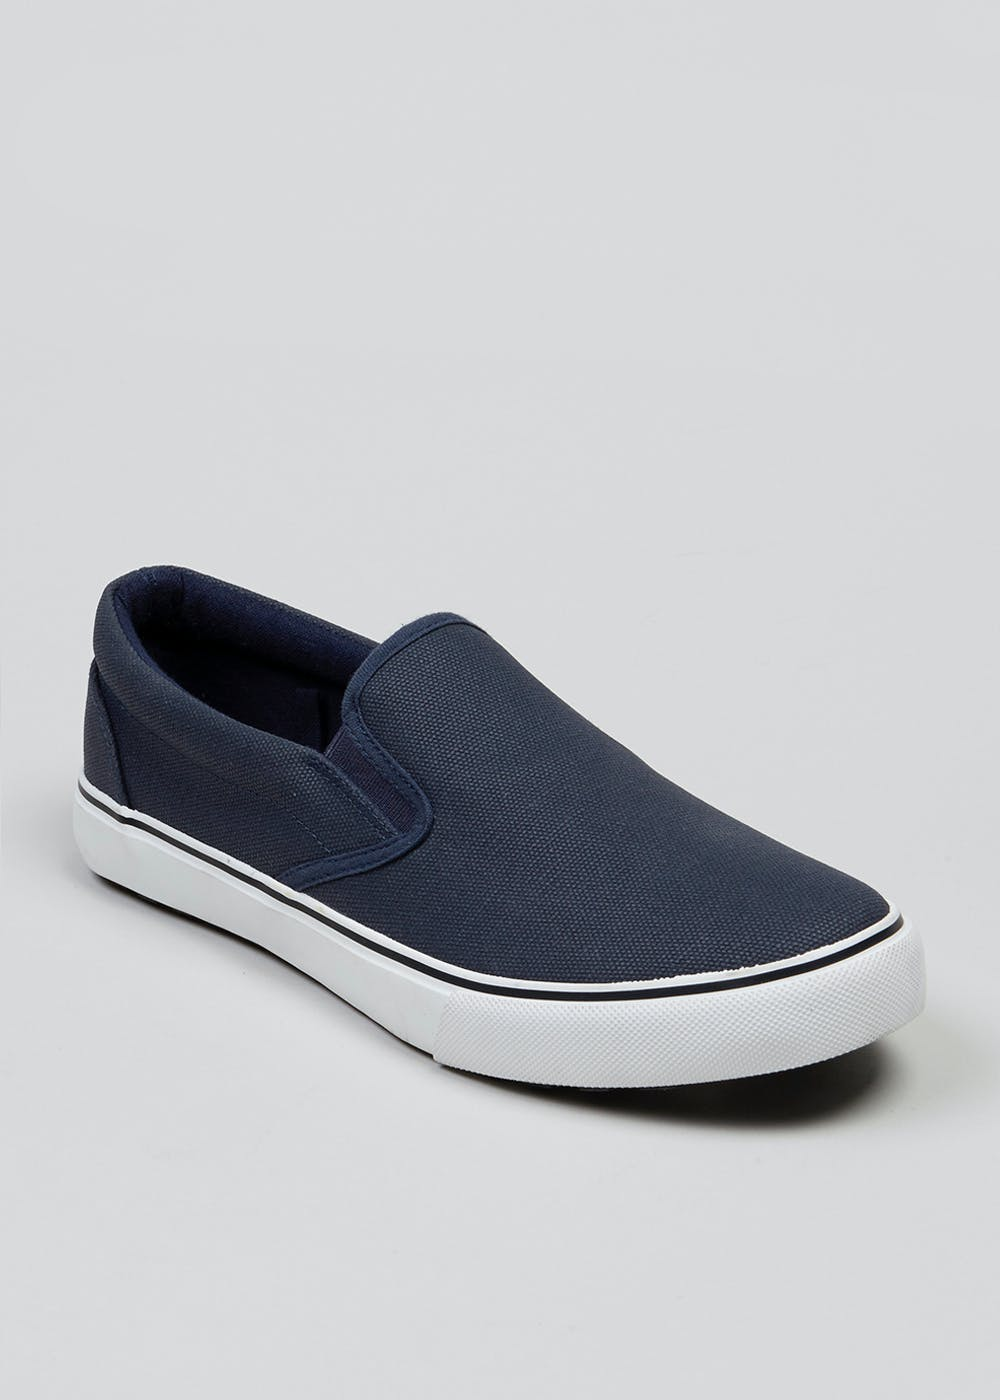 5b337fd88a2 Slip On Canvas Pumps – Navy – Matalan